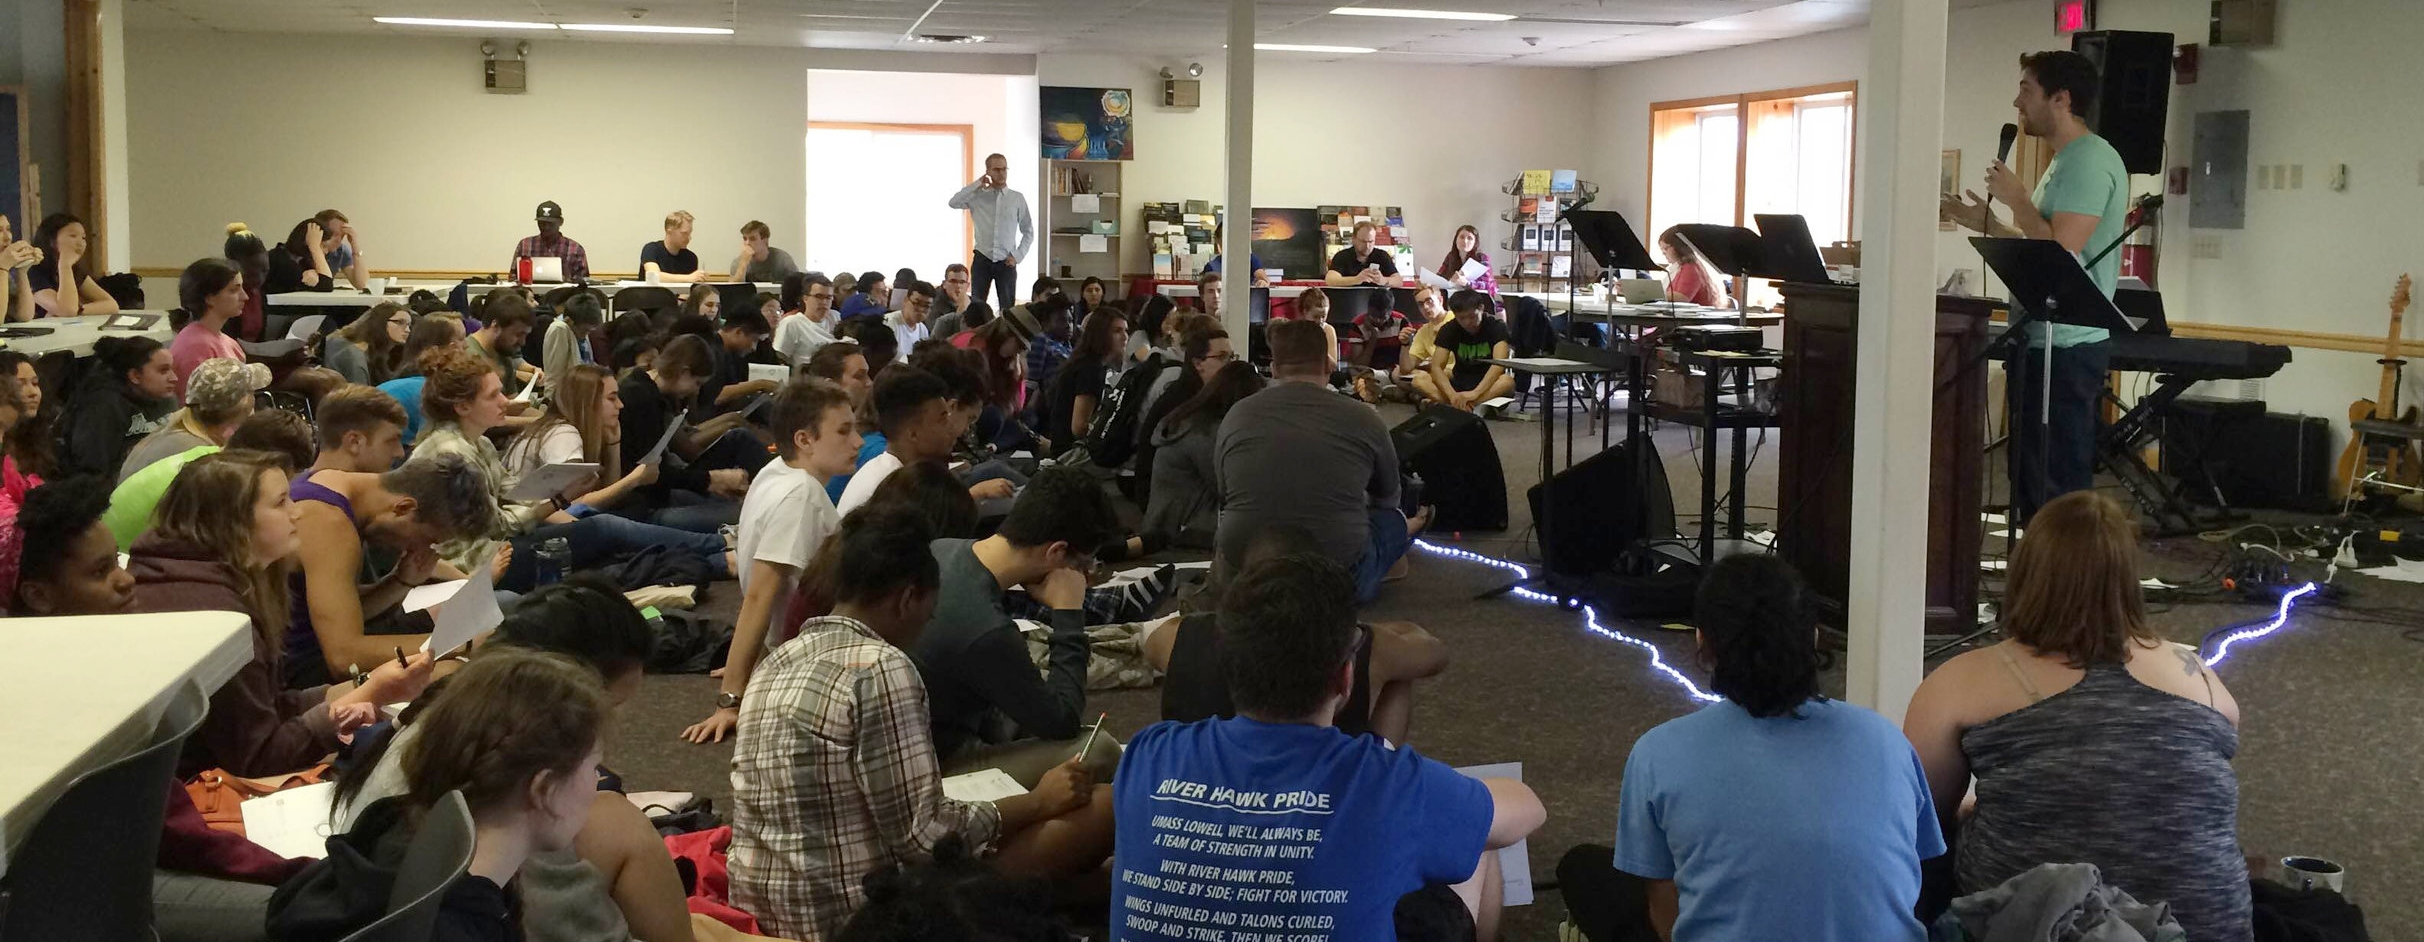 Zack leading 115 students at Summit on how to make good, God centered plans for leading a Bible study small group.